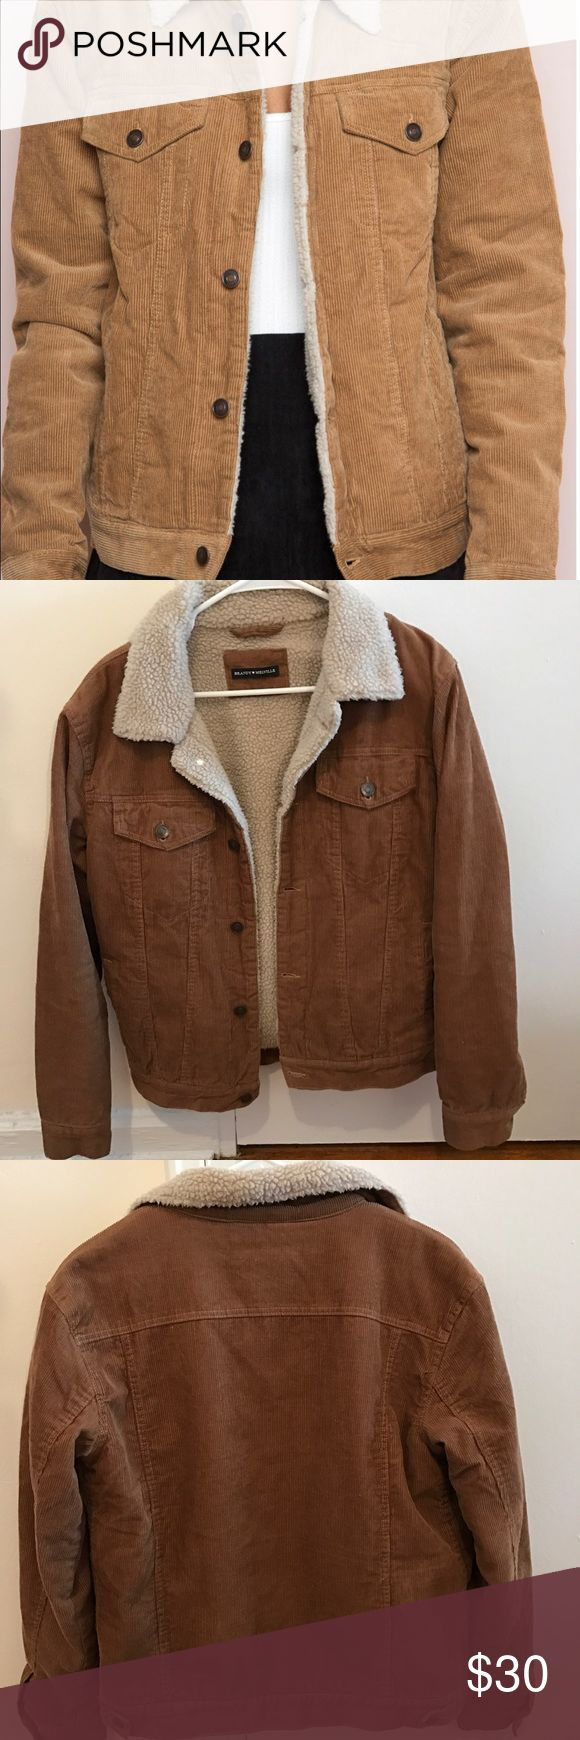 Brandy Melville Tan Elisha Corduroy Jacket Gently used condition, some general wear seen on the inner fur. One size. See measurements:  With the garment closed I measured about 19 in. from pit to pit. For length, from the highest point of the shoulder (next to the seam connecting to collar) I measured 24.5 in. From shoulder next to arm seam (lowest point on shoulder), I measured about 22 in. While I think this would probably fit a medium best (or small for looser fit), please look at…